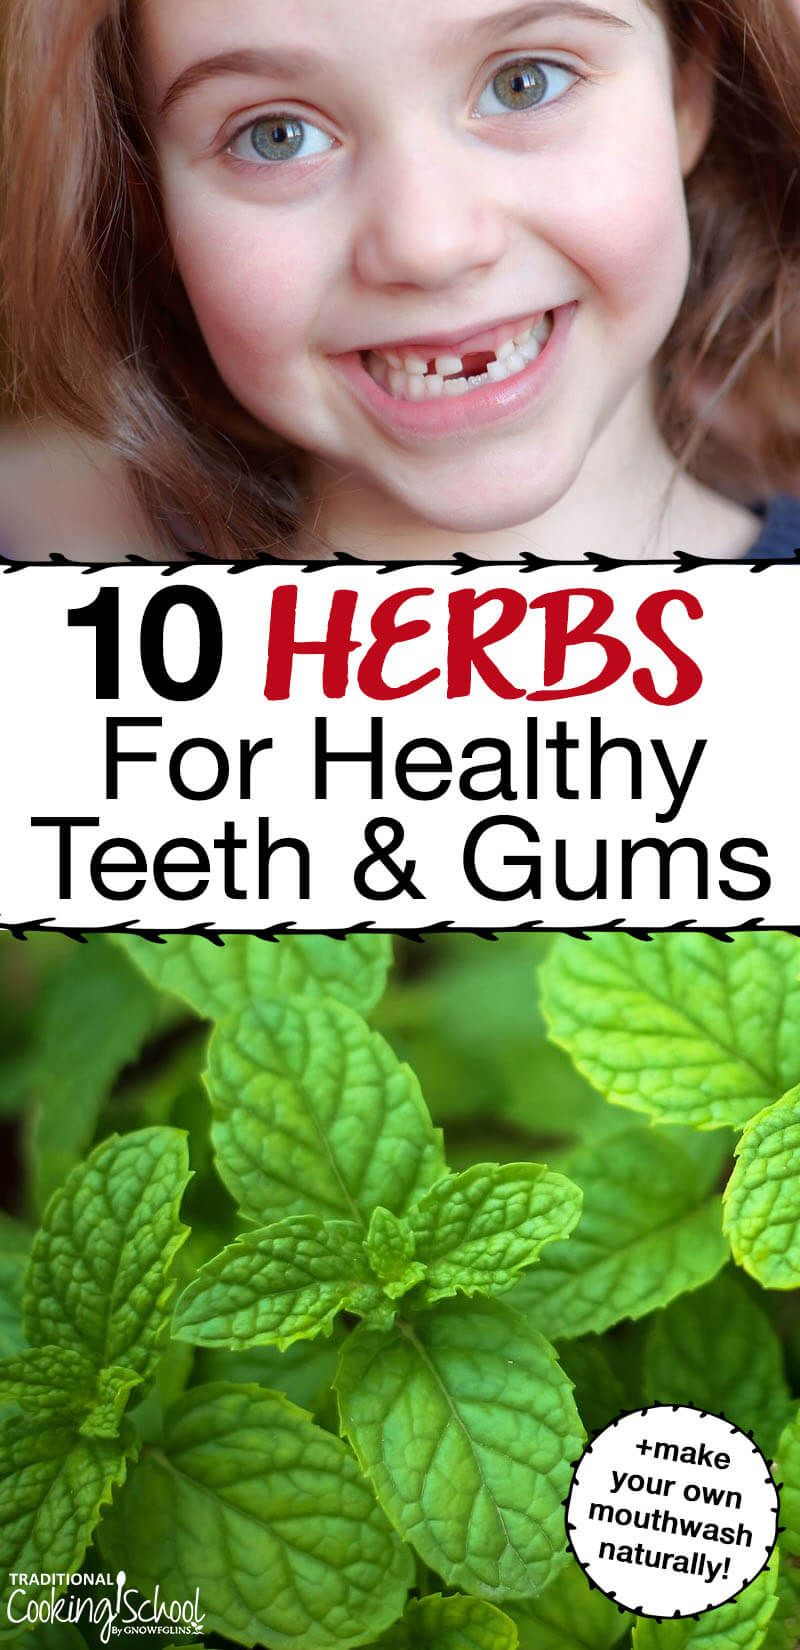 10 herbs for healthy teeth gums make your own natural